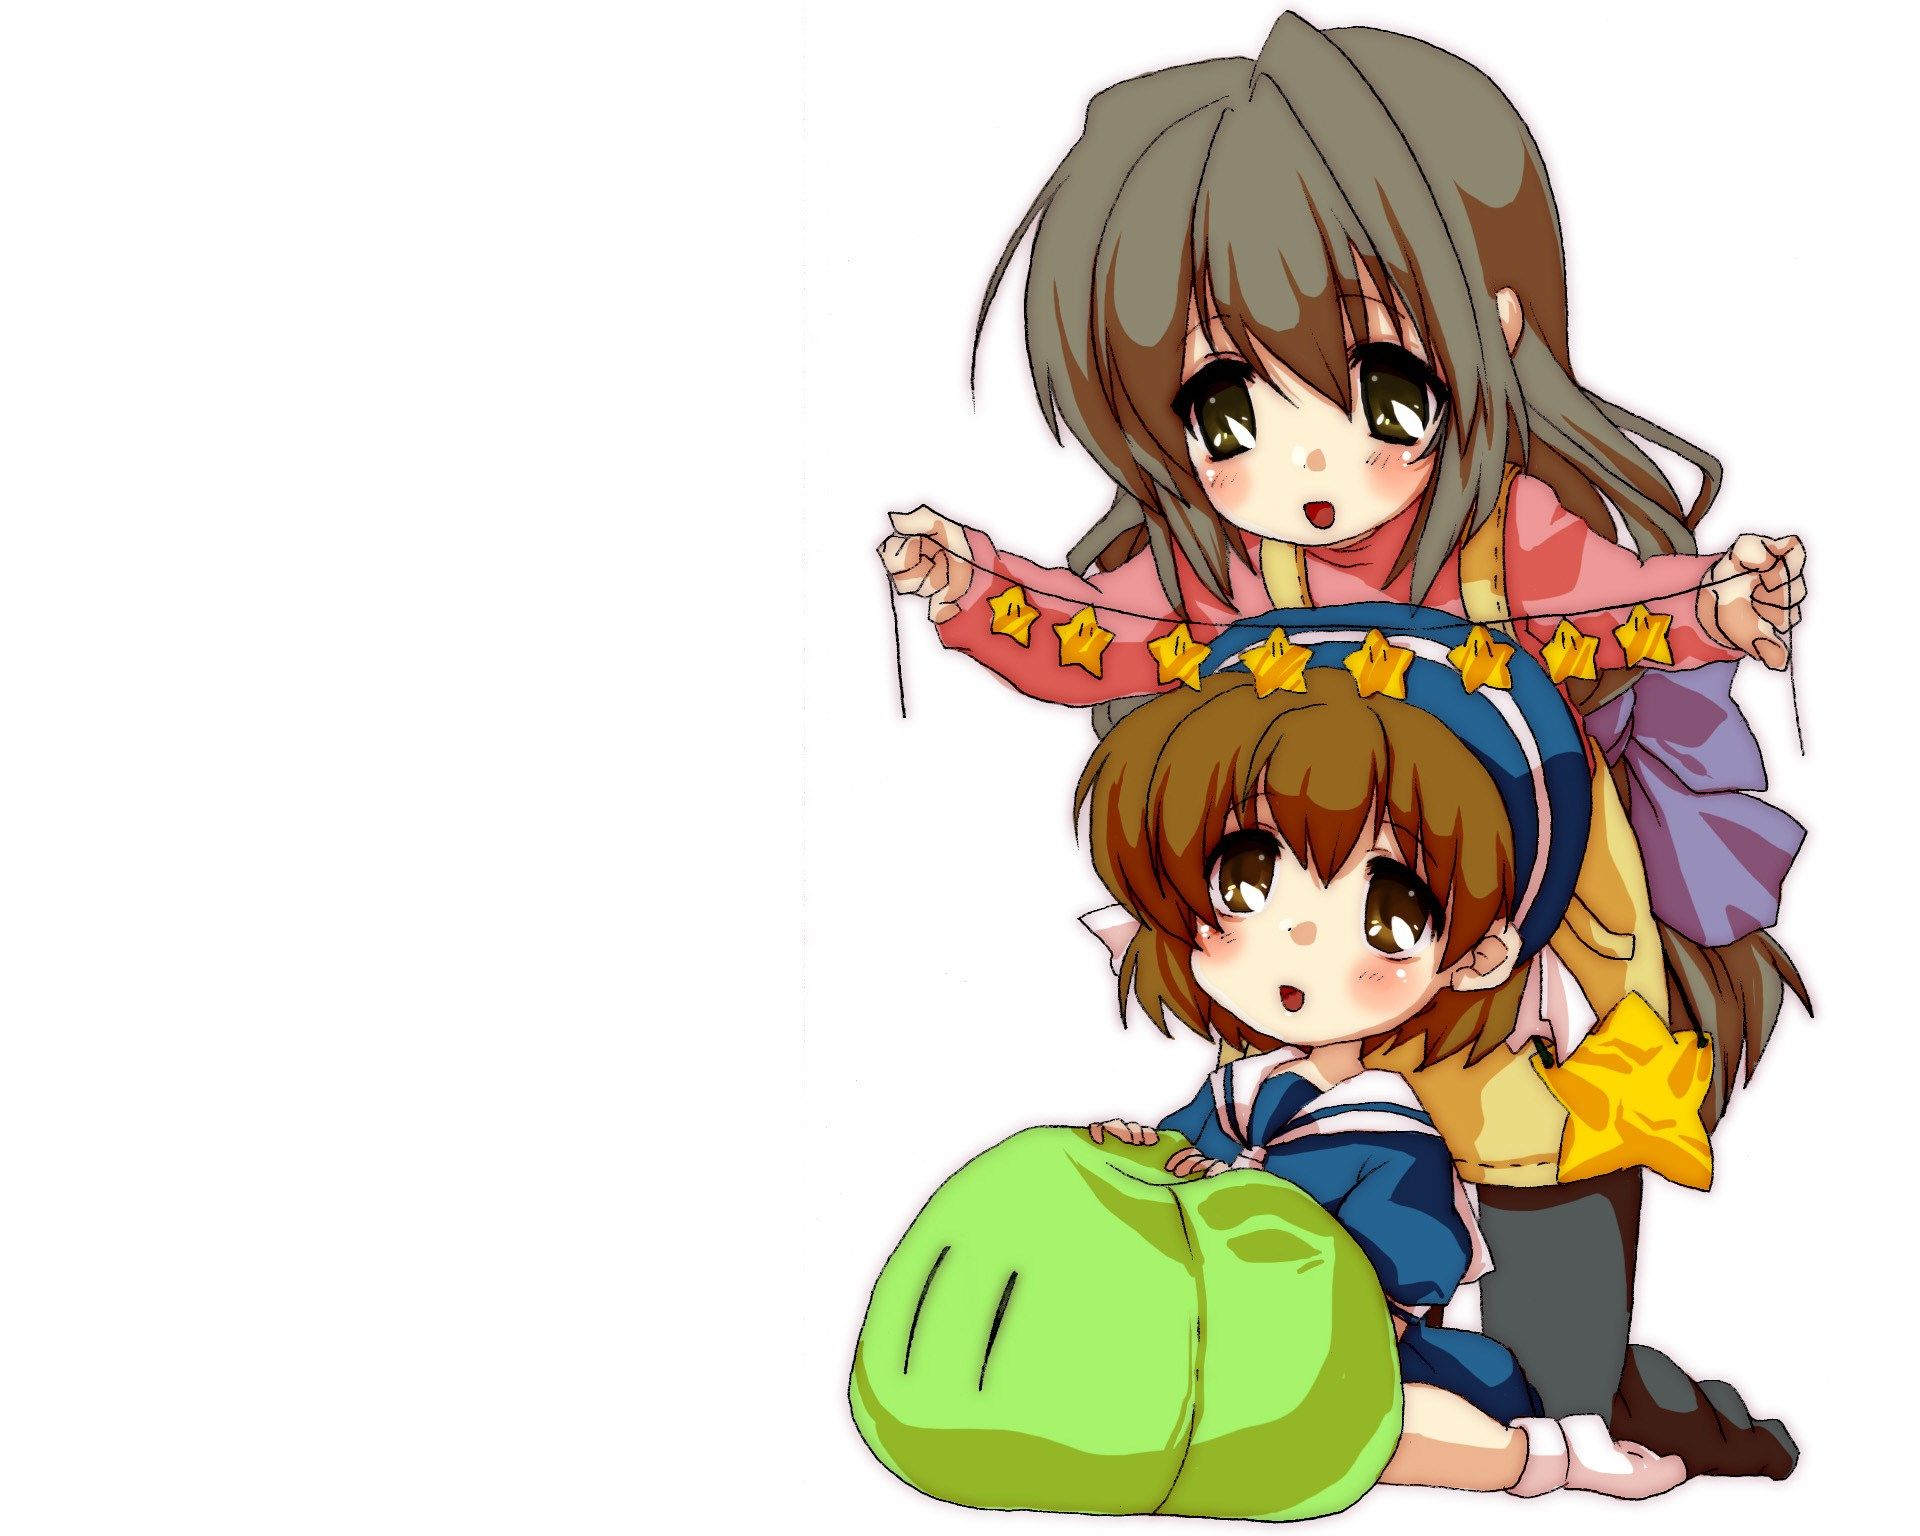 1920x1536 Picture for Desktop: clannad